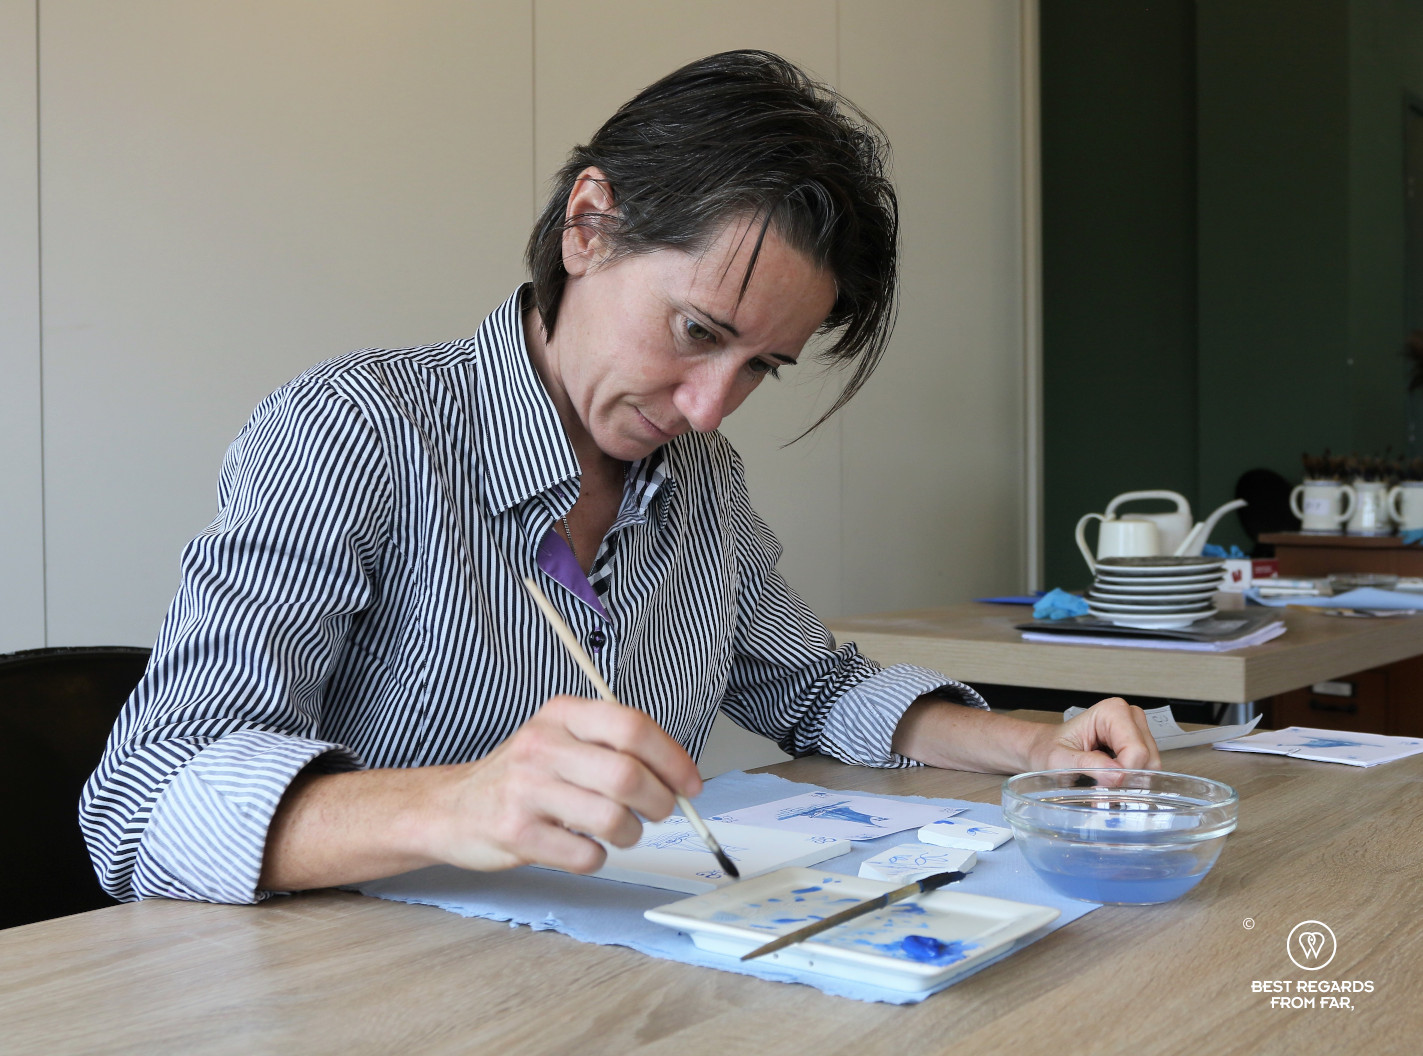 Author Claire Lessiau focusing to paint during a tile painting workshop at Royal Delft, the Netherlands